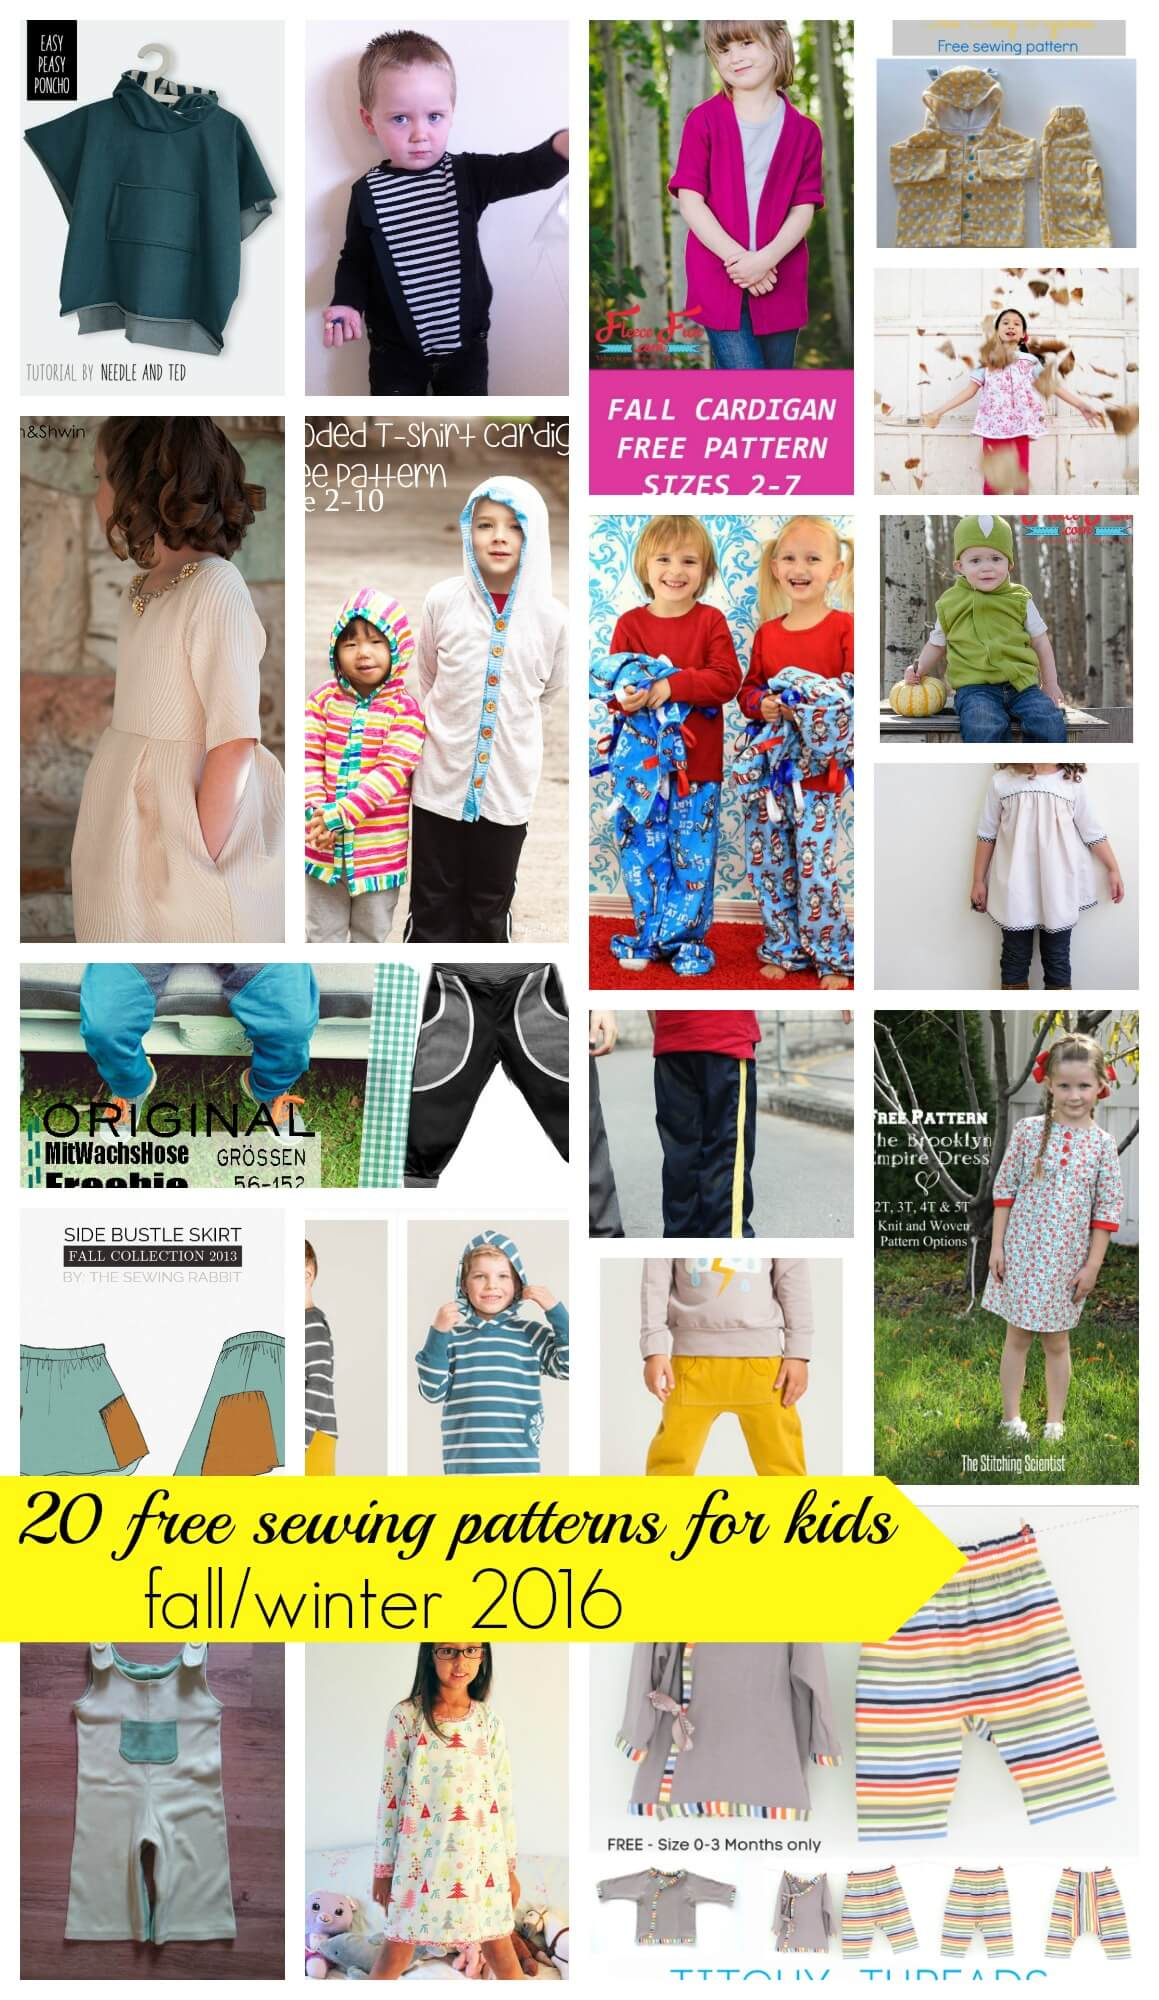 free sewing patterns for kids winterfall-2016-from-nap-time-creations